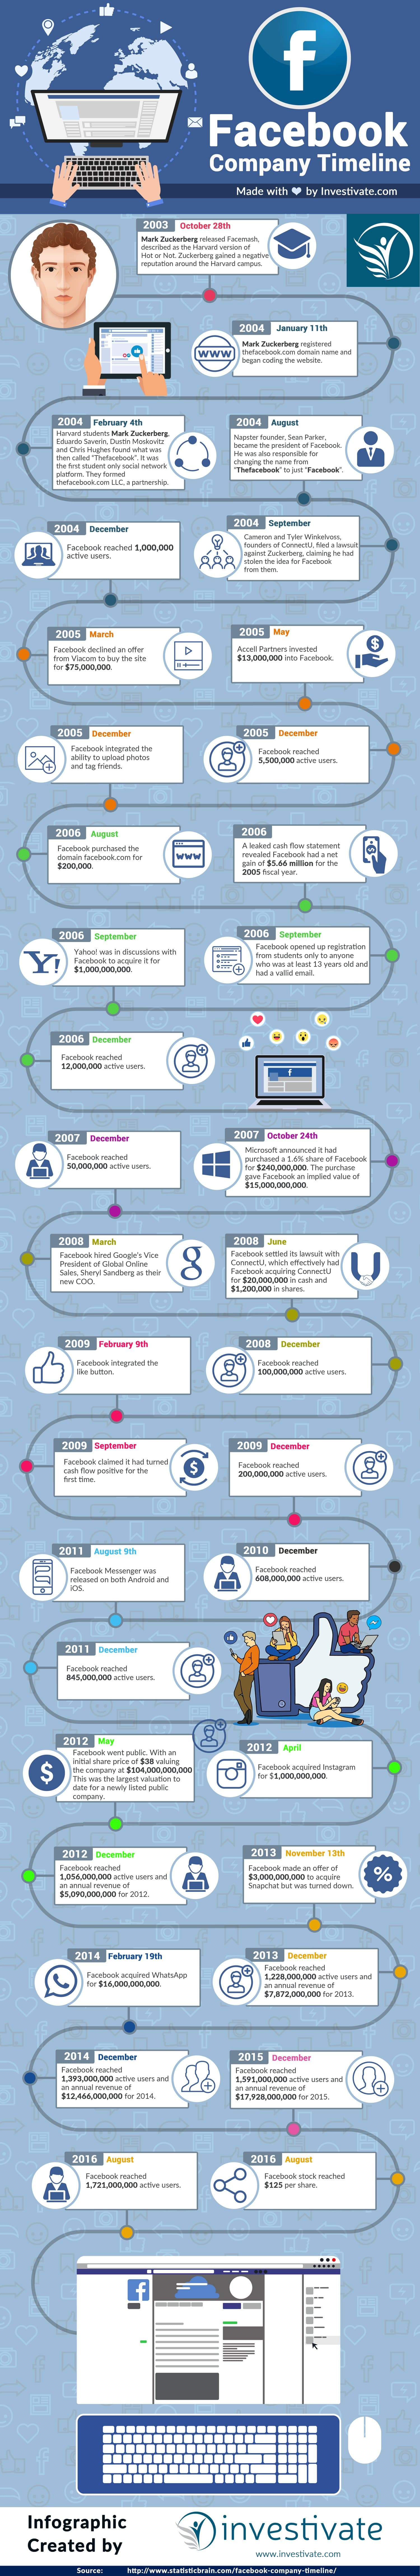 History of Facebook Infographic Timeline